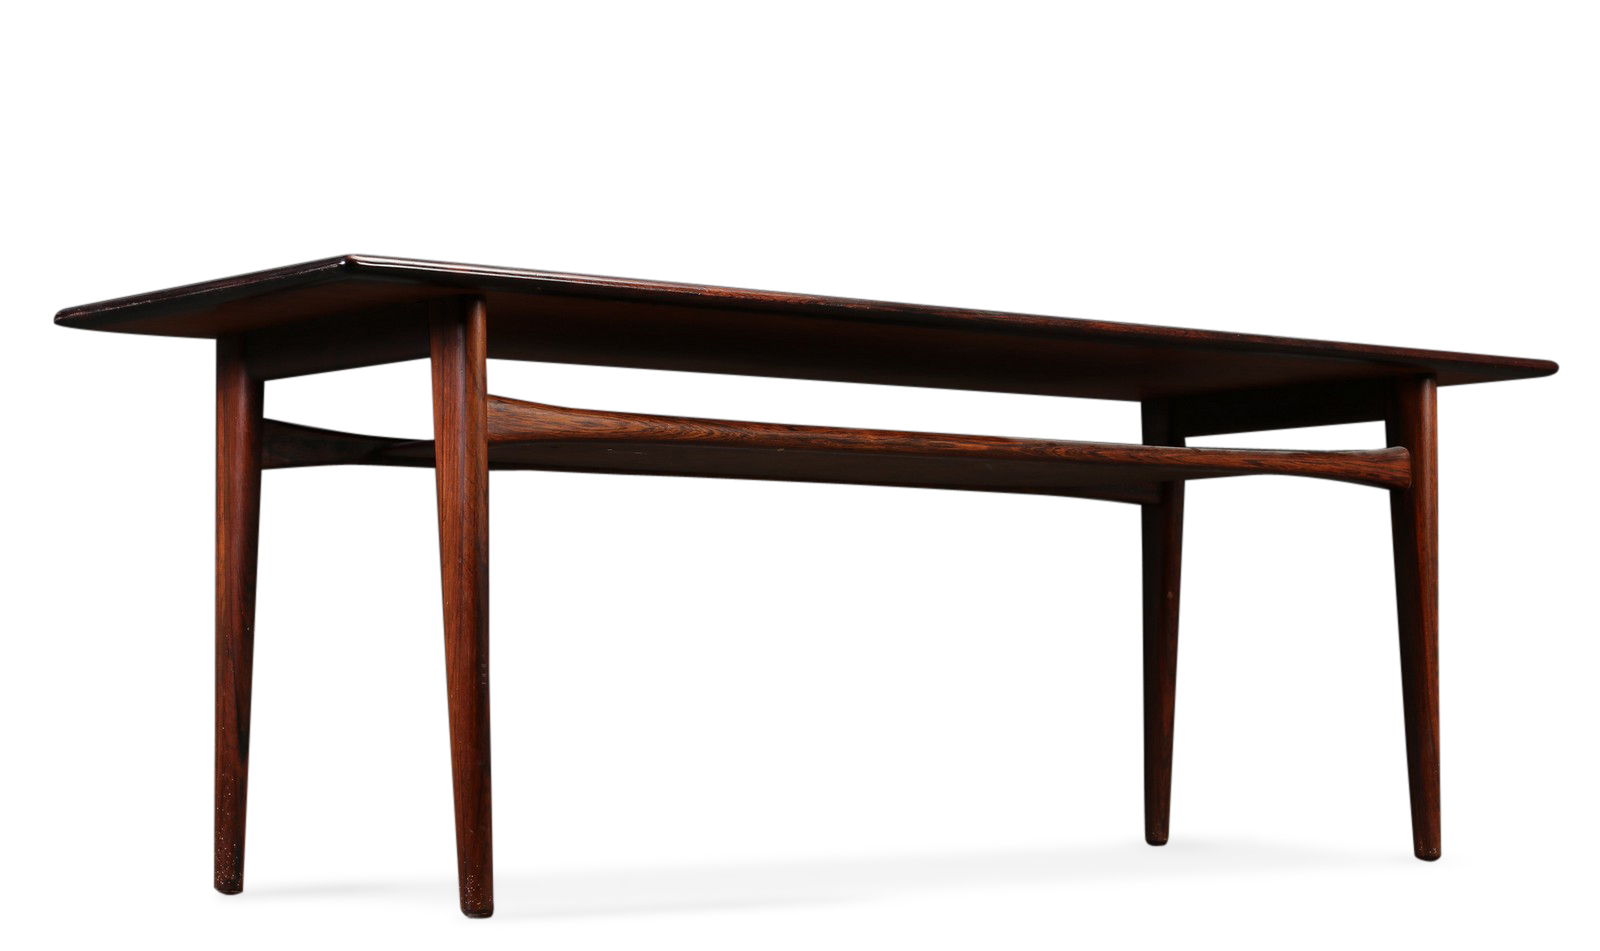 Well Known Vintage Wood Coffee Tables In 60's Coffee Table – The Vintage Furniture (View 18 of 20)